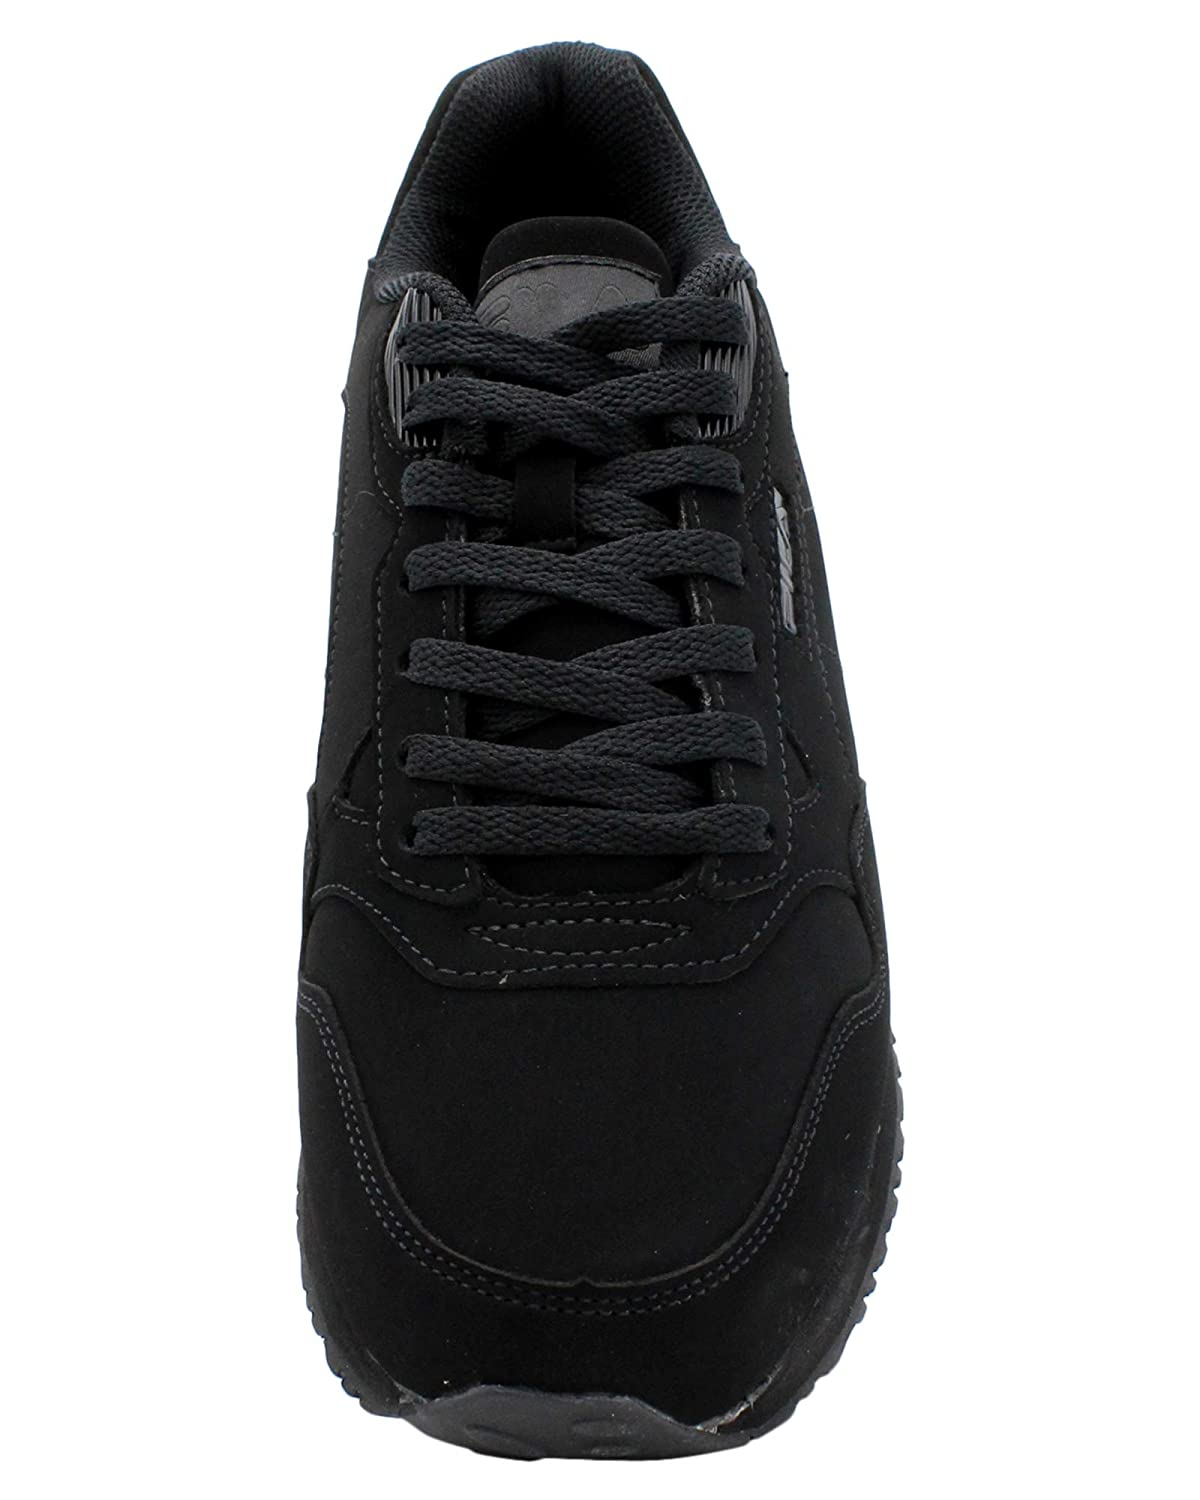 Fila Mens Cress Leather Textile Casual Sneakers